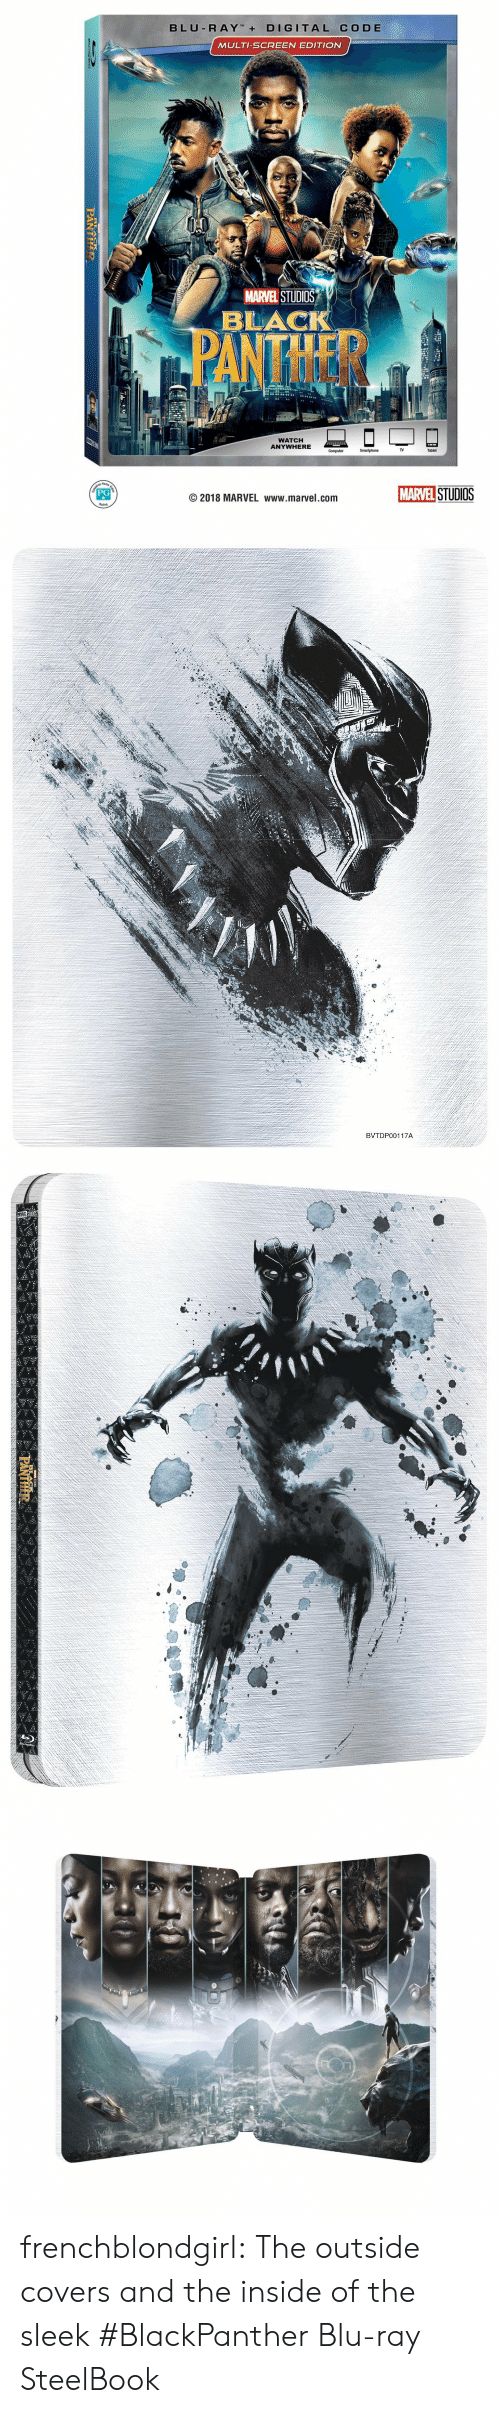 Tablet, Target, and Tumblr: BLU R AYDIGITAL CODE  MULTI-SCREEN EDITION  MARVEL STUDIOS  BLAC  WATCH  ANYWHERE  Computer  TV  Tablet  STUDIOS  PG  ©2018 MARVEL www.marvel.com   BVTDP00117A frenchblondgirl:   The outside covers and the inside of the sleek #BlackPanther Blu-ray SteelBook